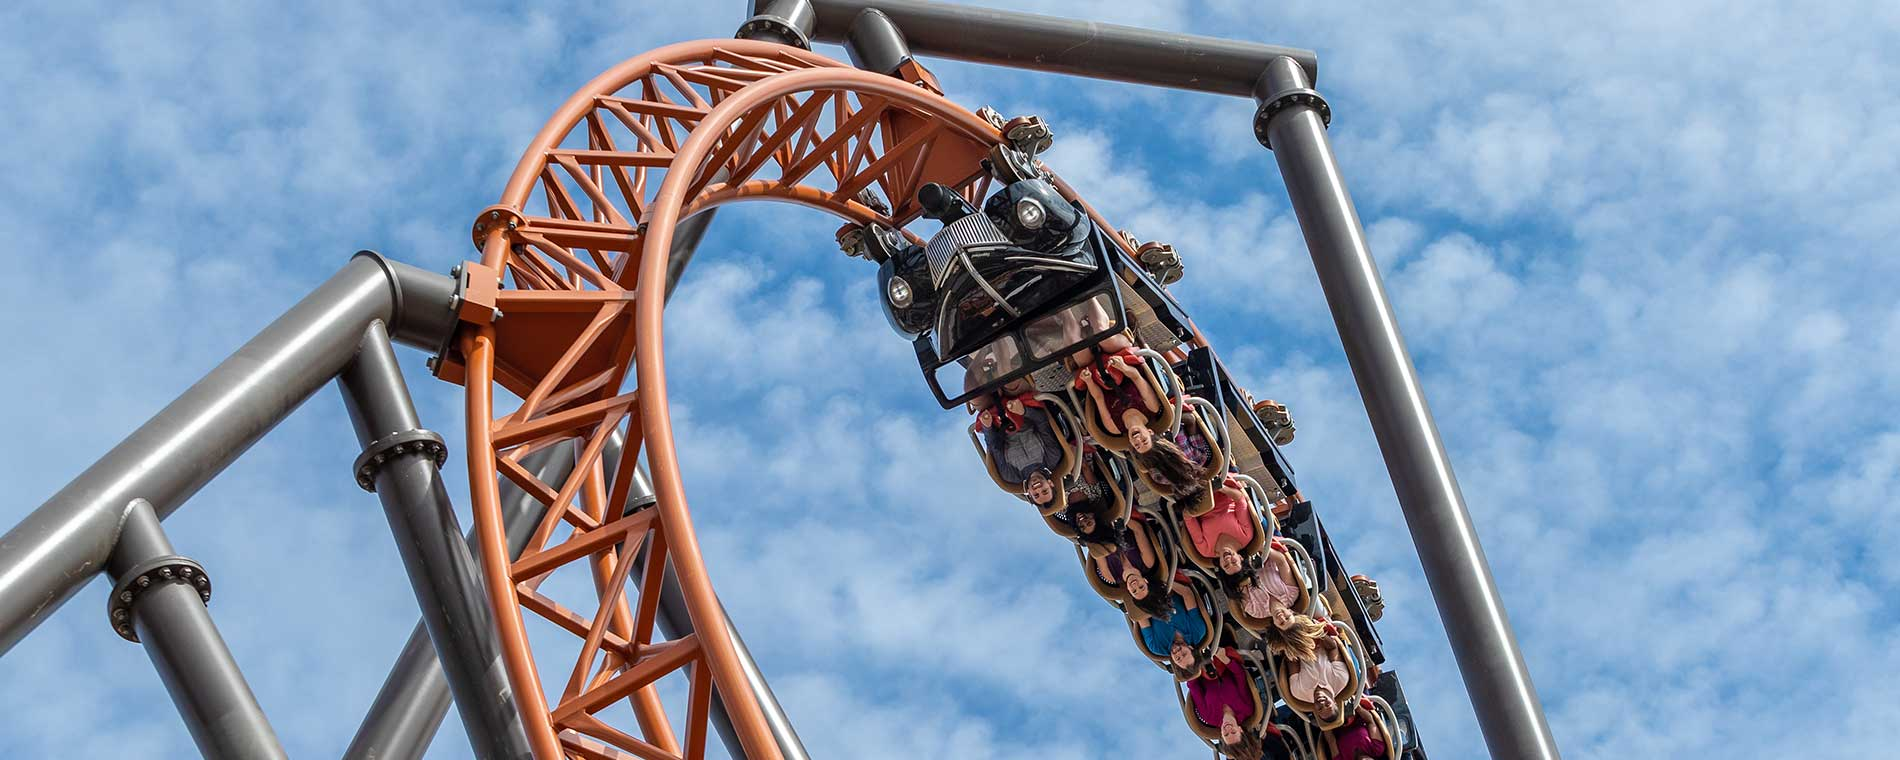 Copperhead Strike launched roller coaster at Carowinds